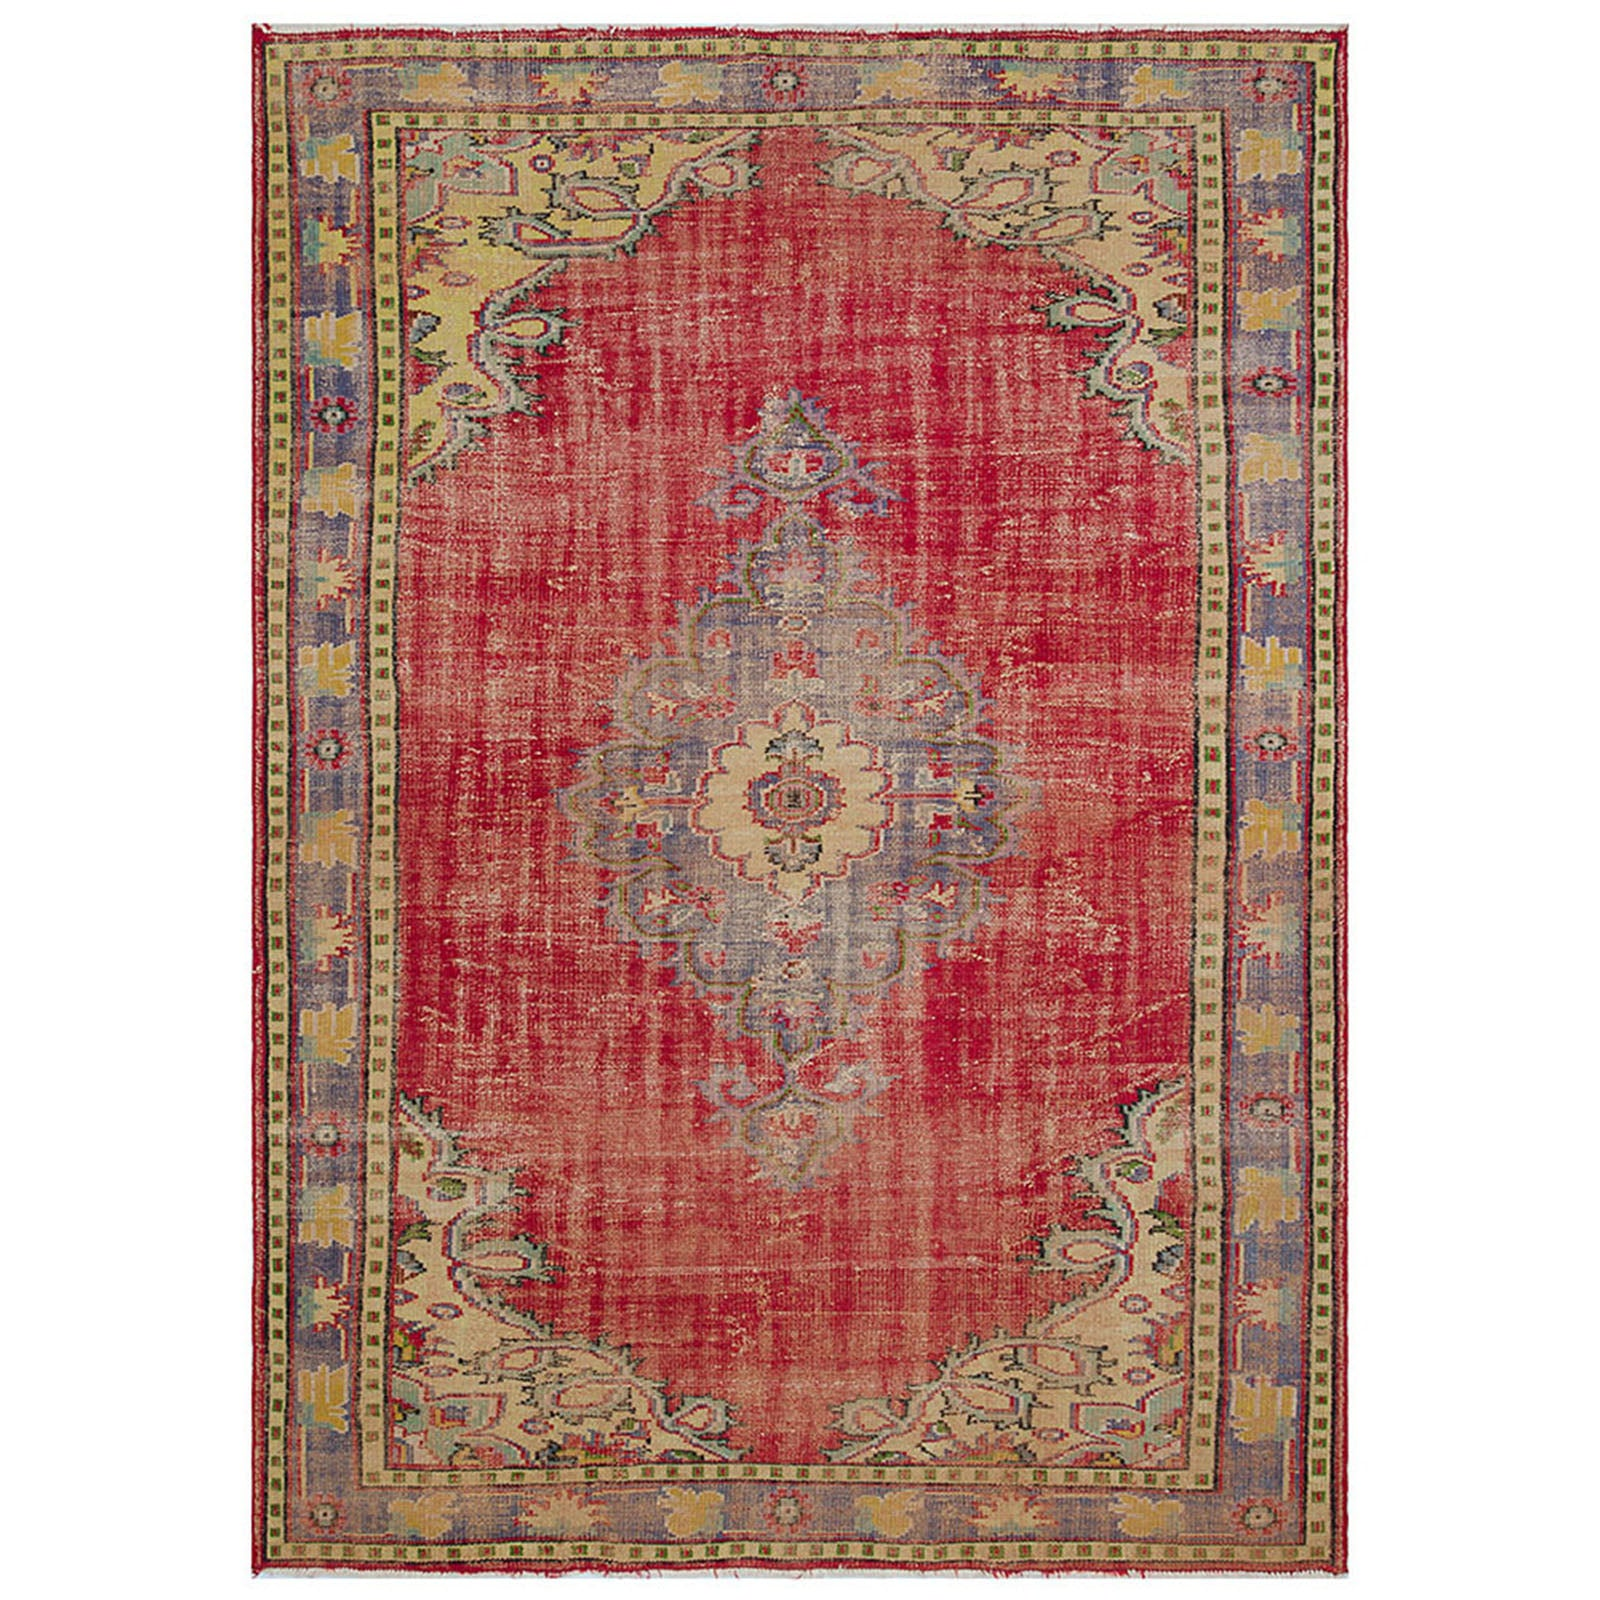 Hali 205X290  CM Bursa Handmade over dyed rug  2065 -  205*290 سجاده بورصة صناعة يدوية على بساط مصبوغ - Shop Online Furniture and Home Decor Store in Dubai, UAE at ebarza